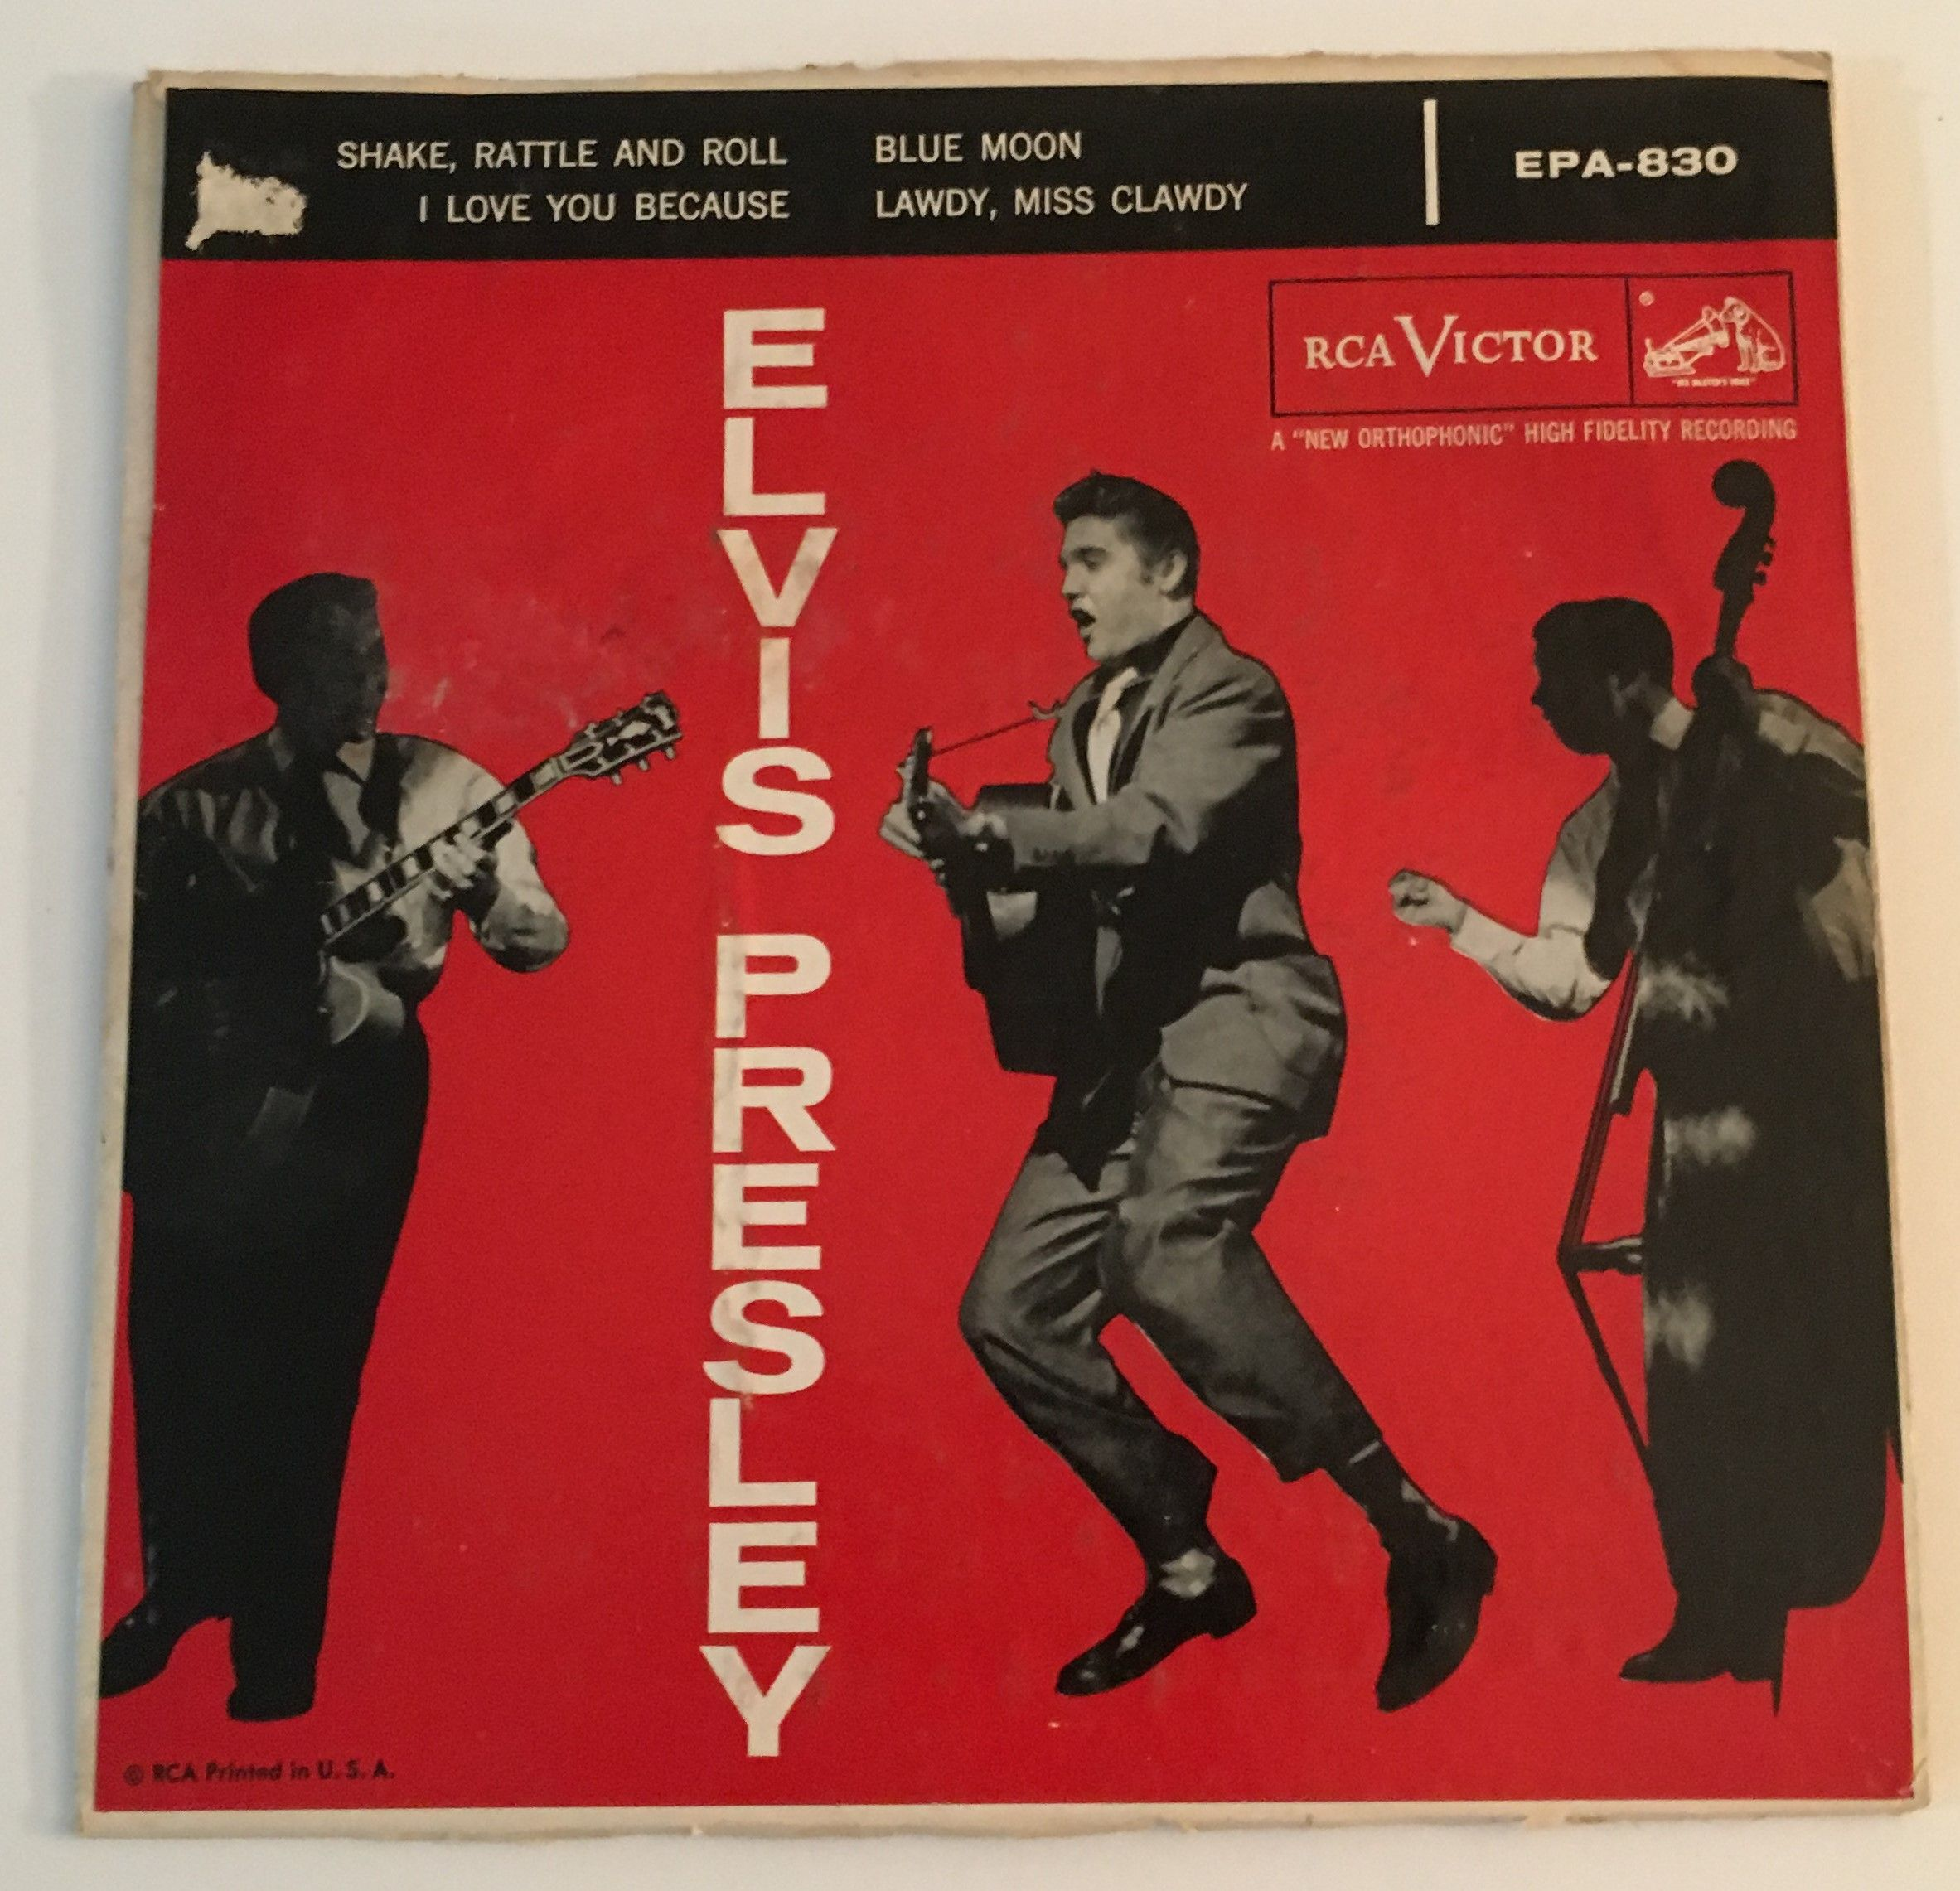 ef8fb6d1517b Elvis Presley 45 EP Shake rattle and roll red label Canadian 7